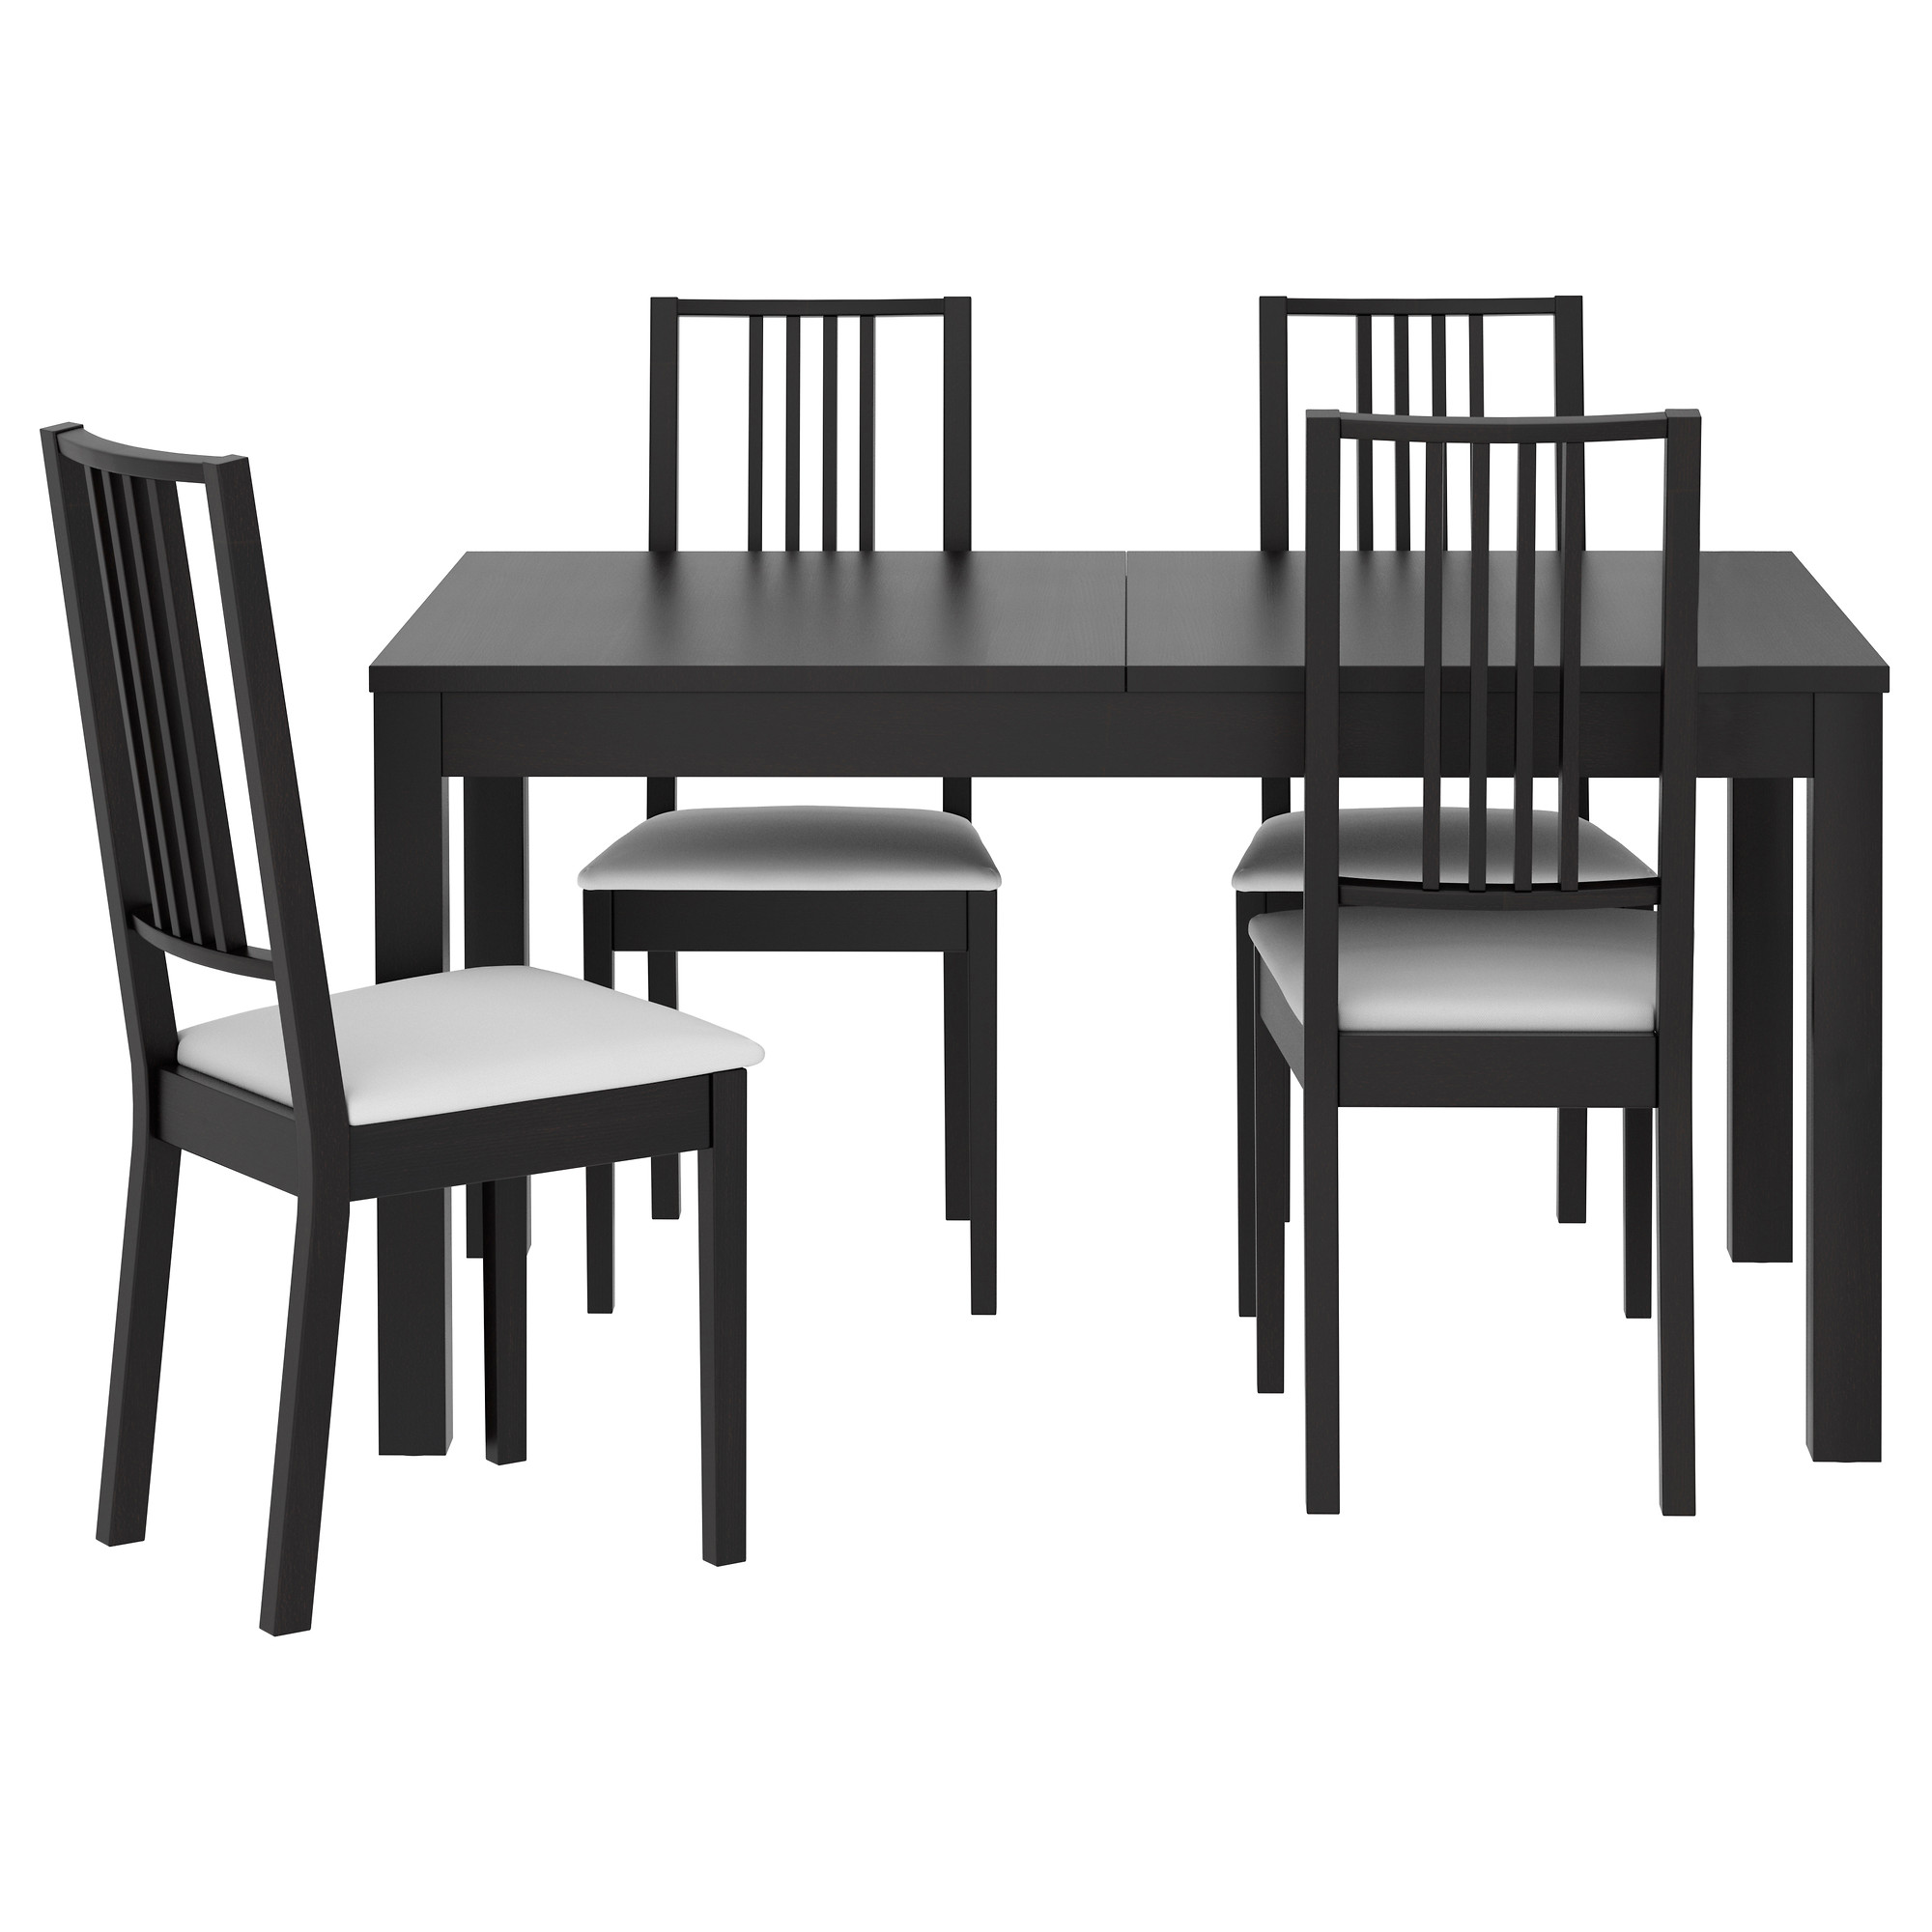 Standard Dining Room Table Dimensions Seater Redoubtable Round Glass Top Pedestal Dining Table And 4